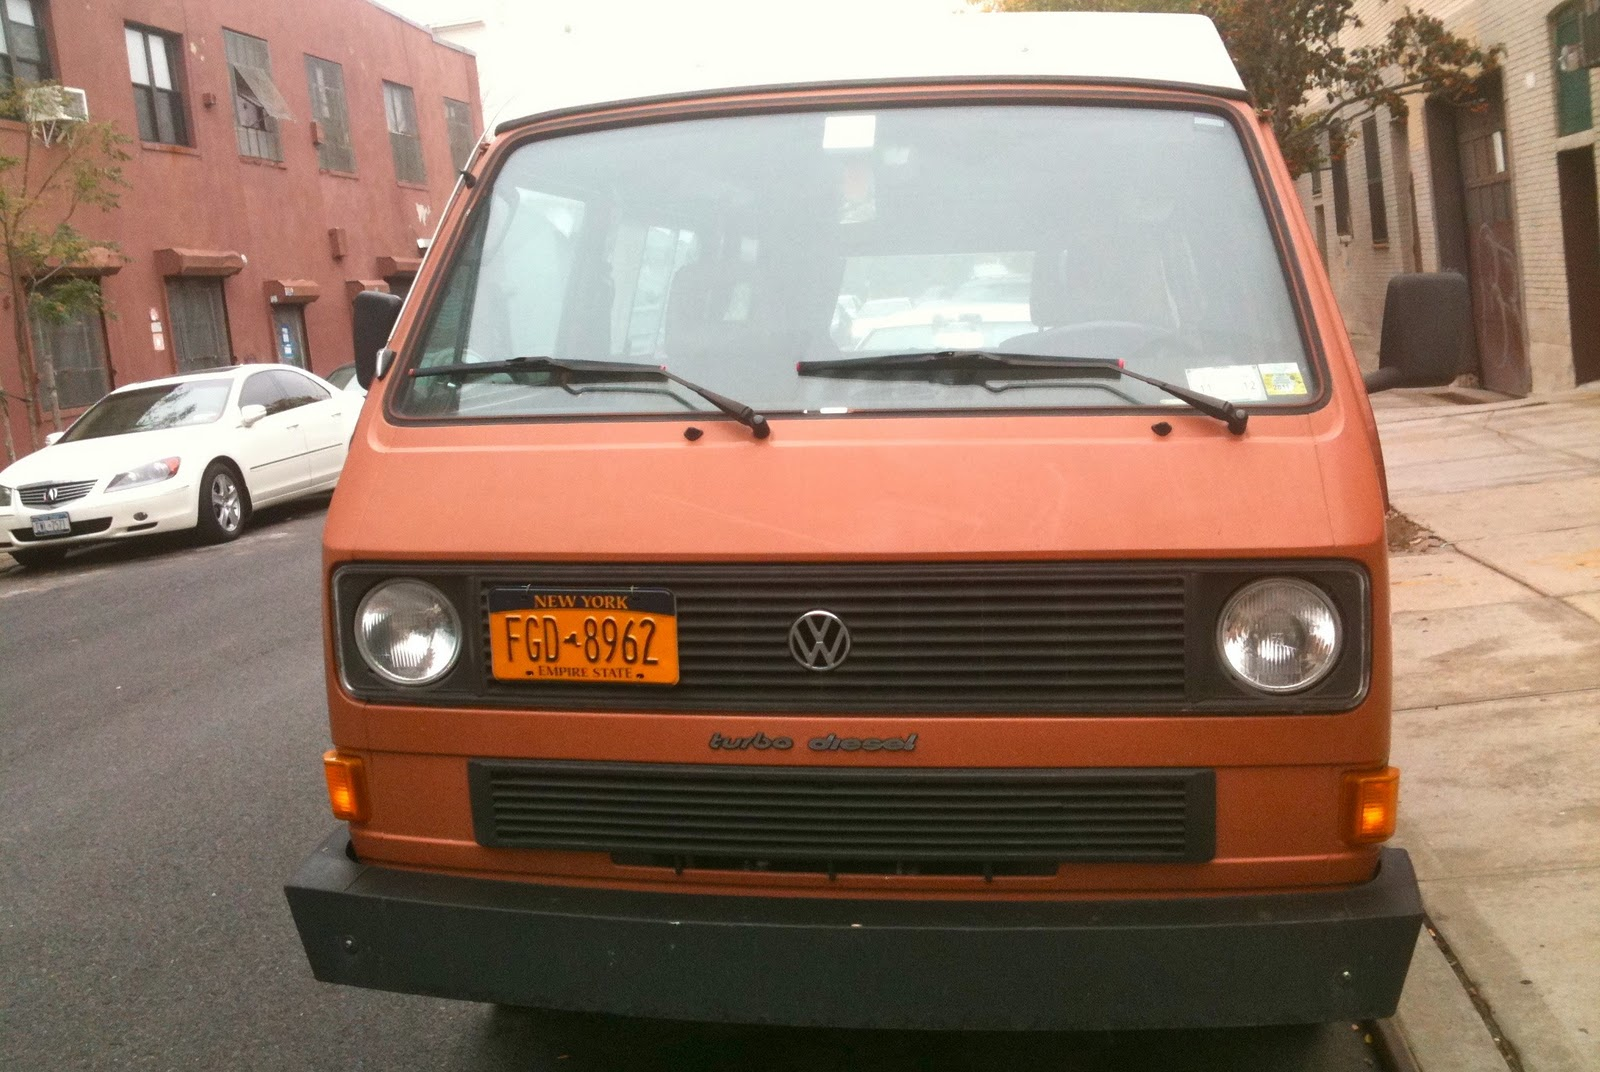 THE STREET PEEP: 1980 Volkswagen Vanagon Turbo Diesel